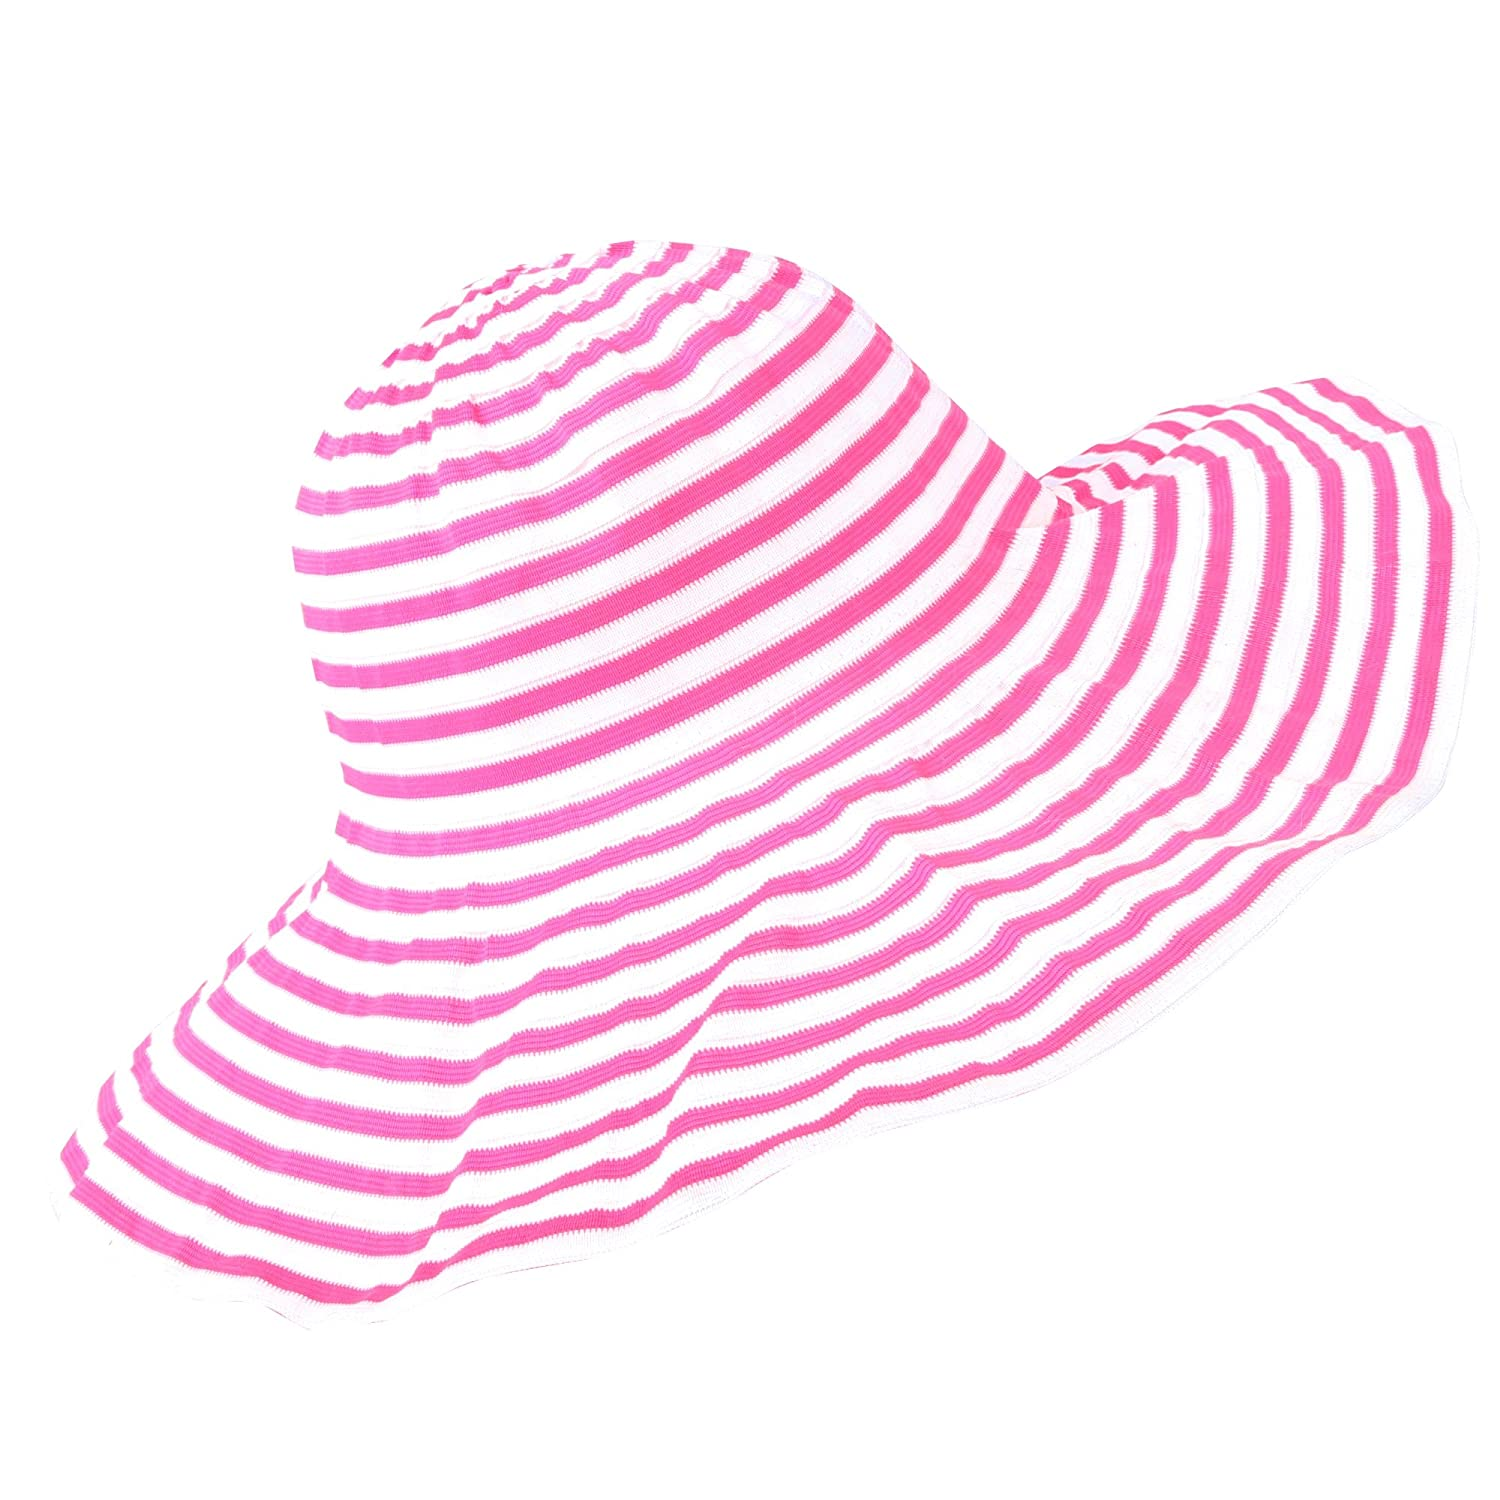 WITHMOONS Women Foldable Light Swirl Striped Floppy Hat Beach Cap NC9718